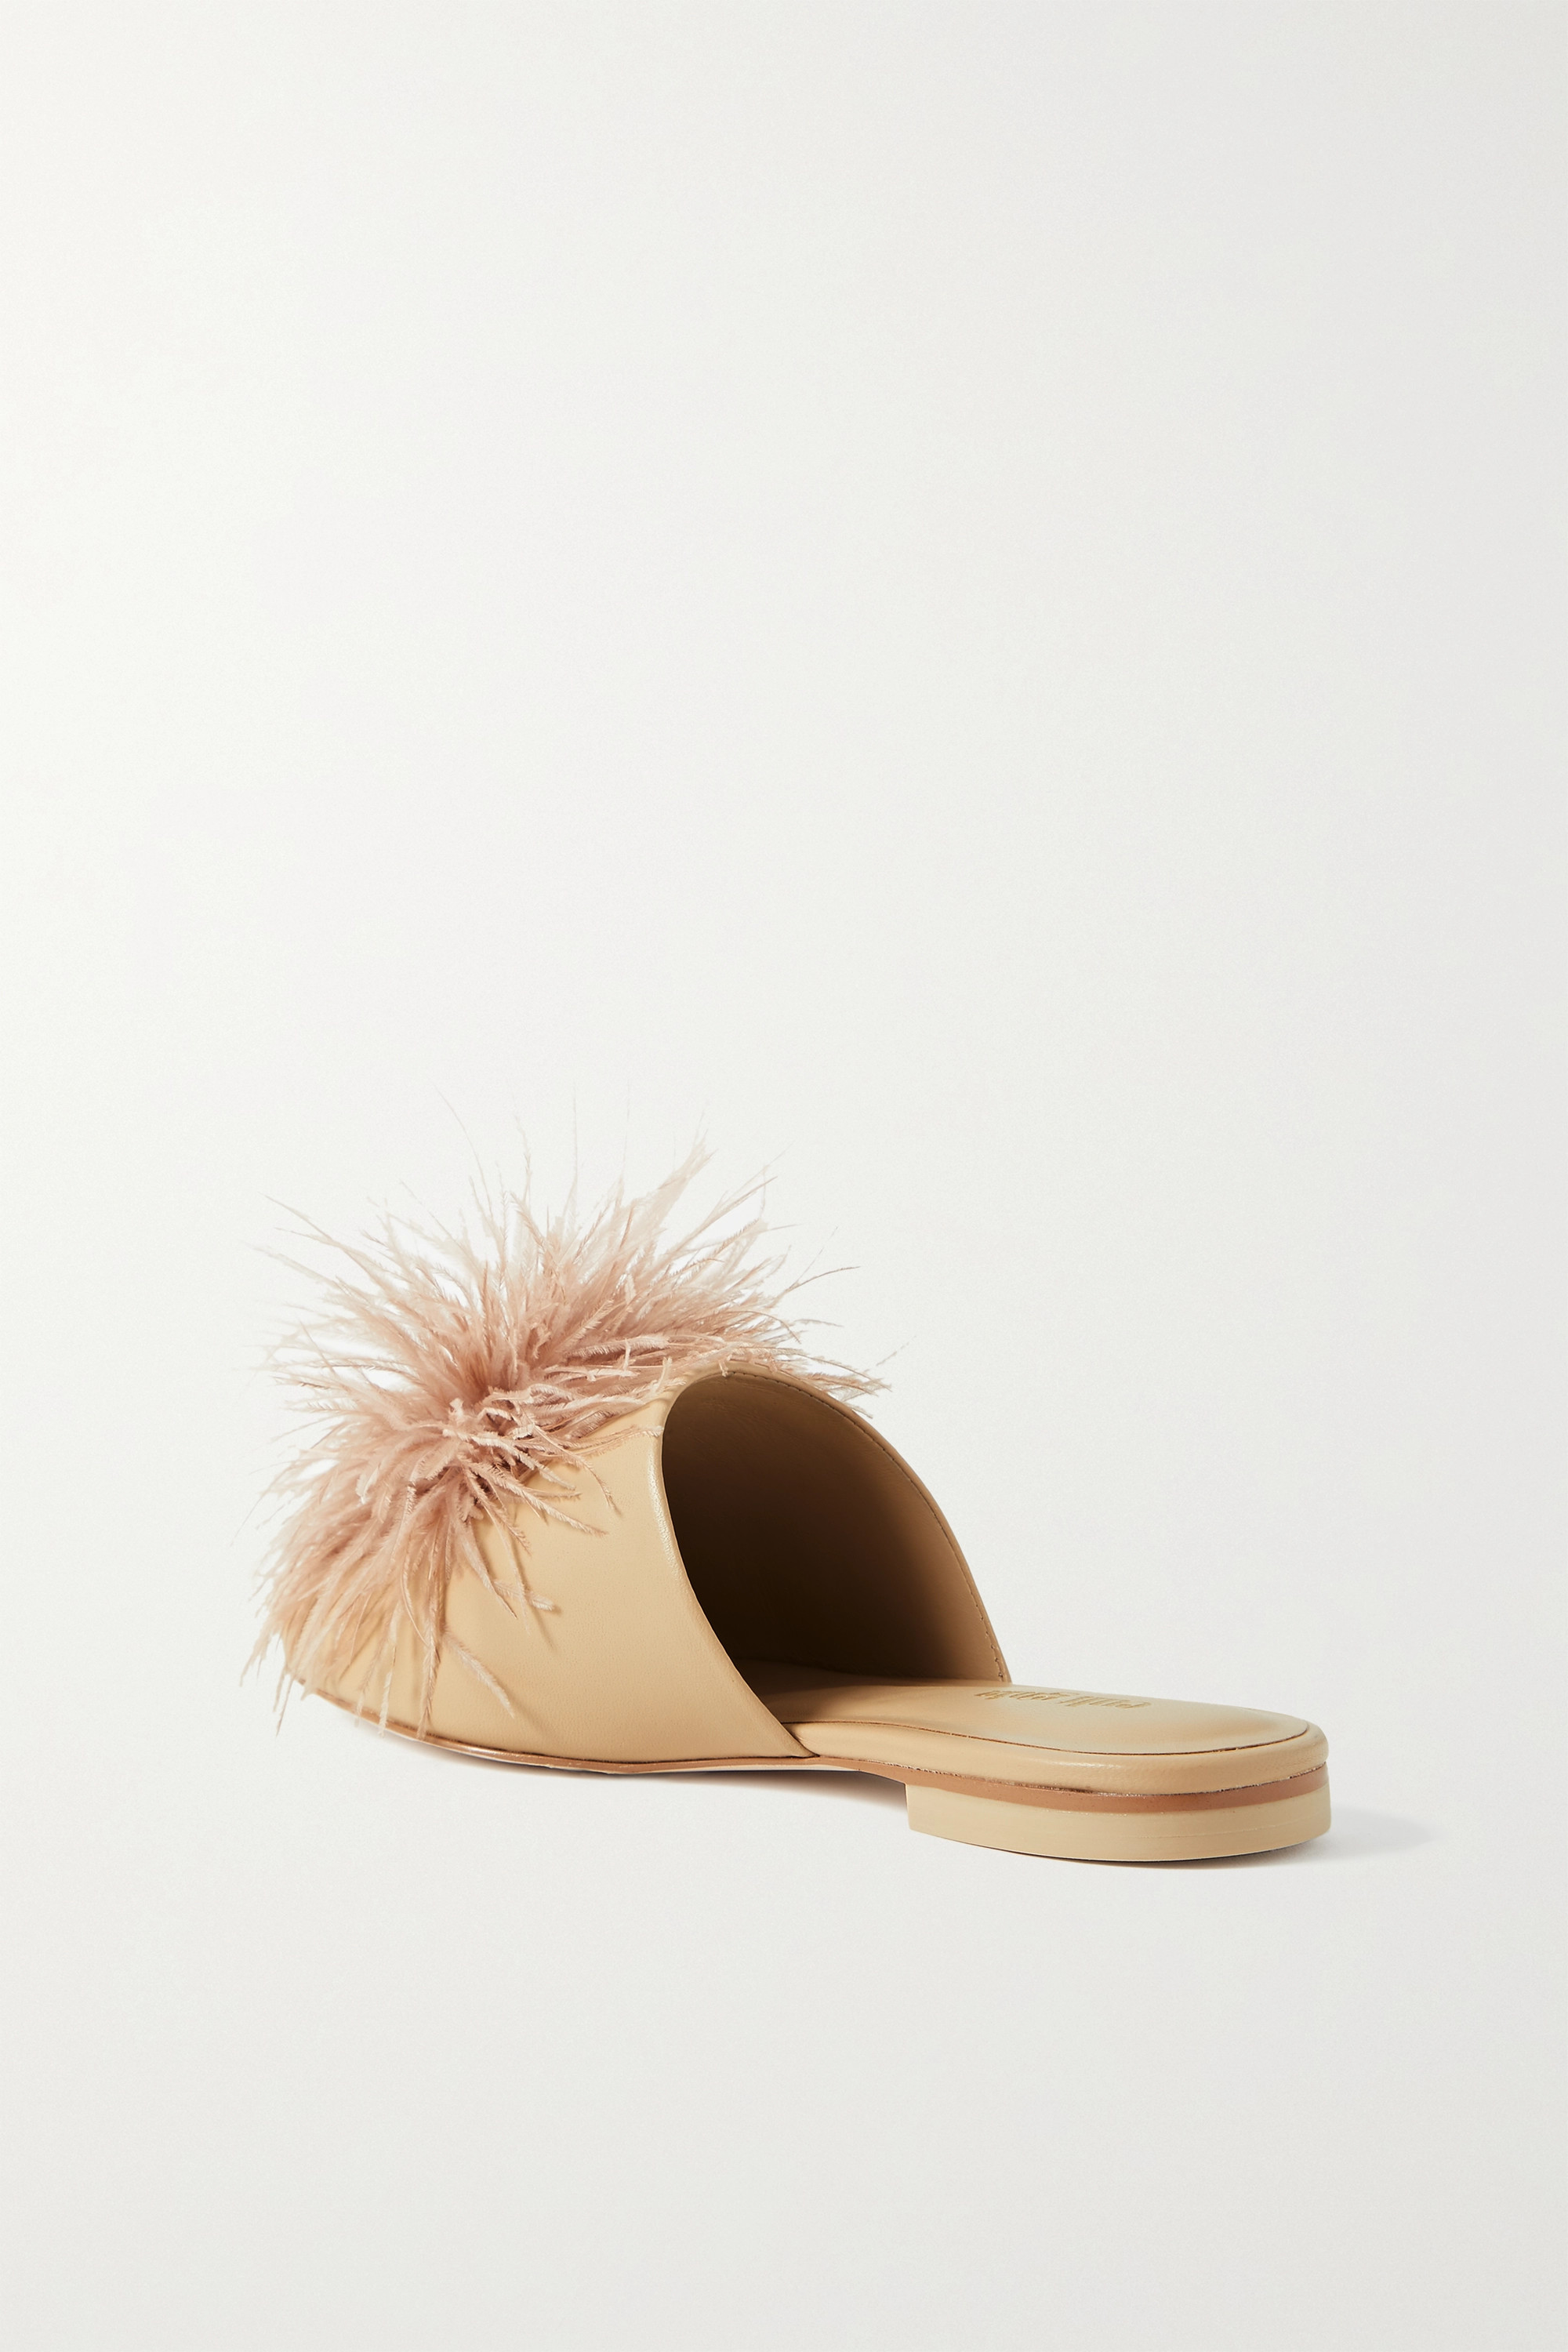 Cult Gaia Ray feather-trimmed leather slippers